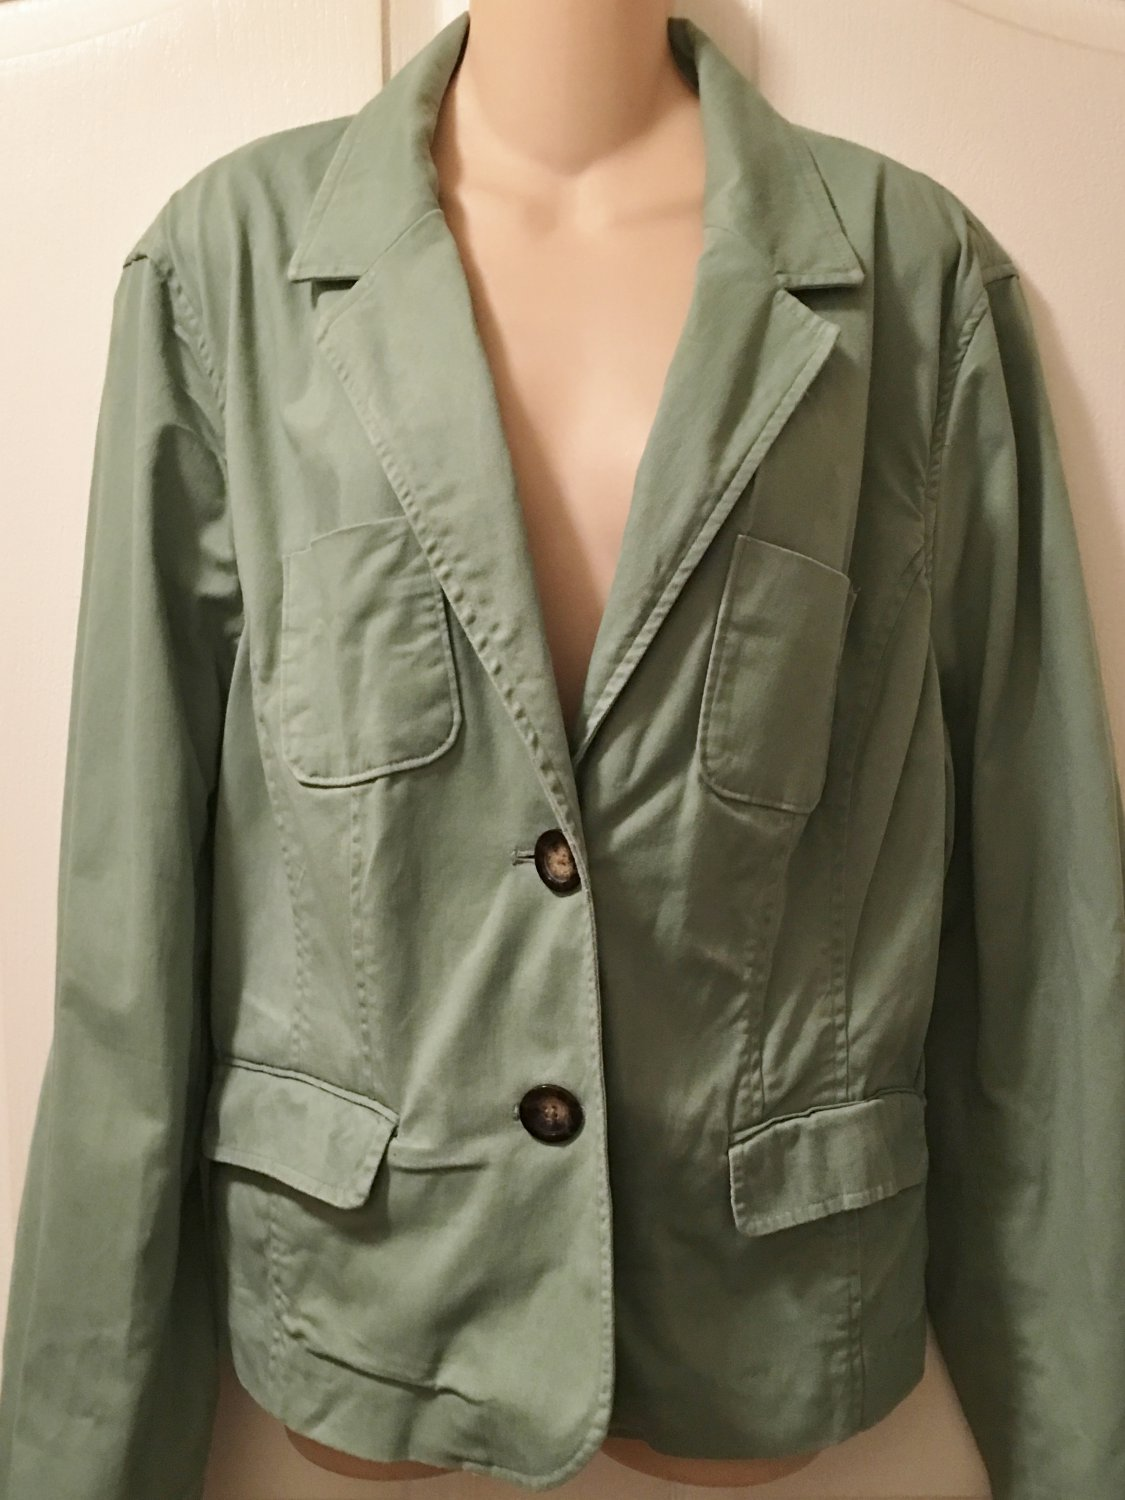 NEW Ladies BLAZER Mossimo Jacket XXL Cotton Blend SAGE ...